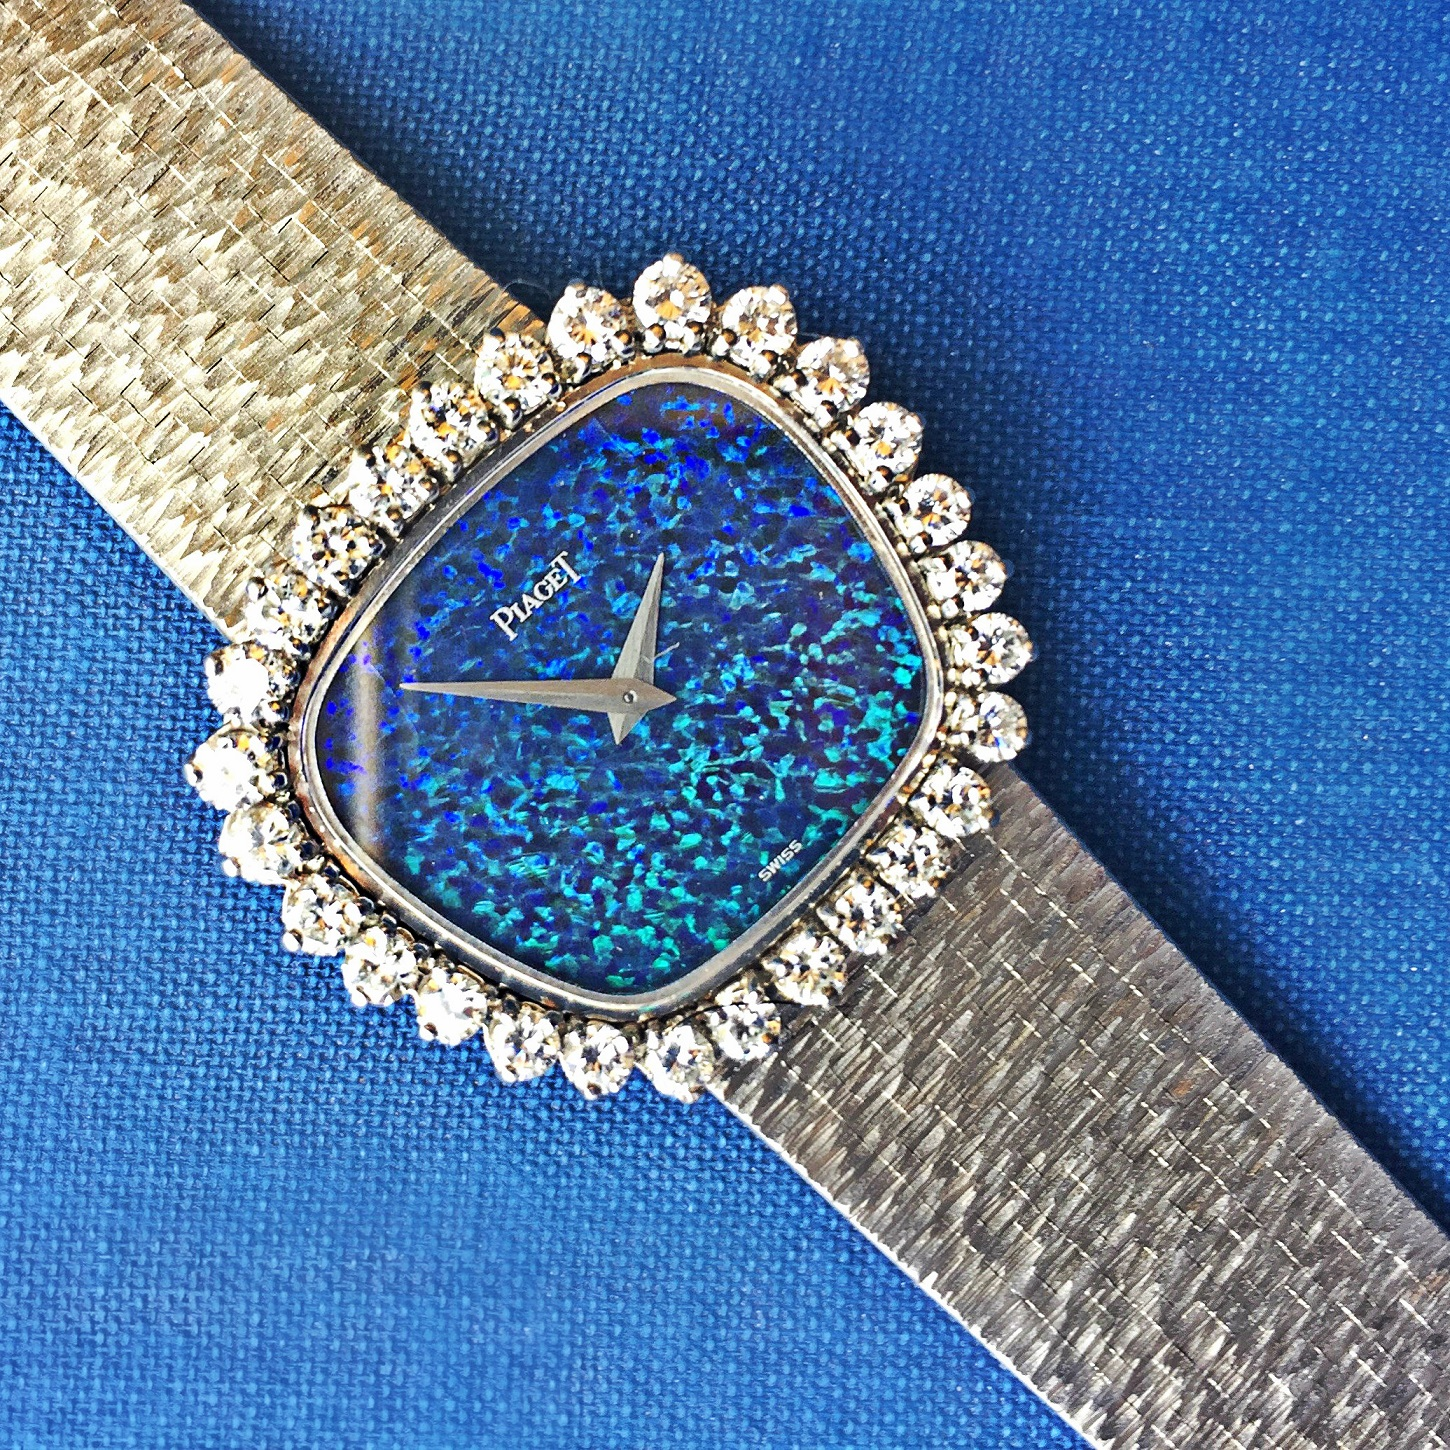 Buy a Piaget Womens Watch with Diamonds